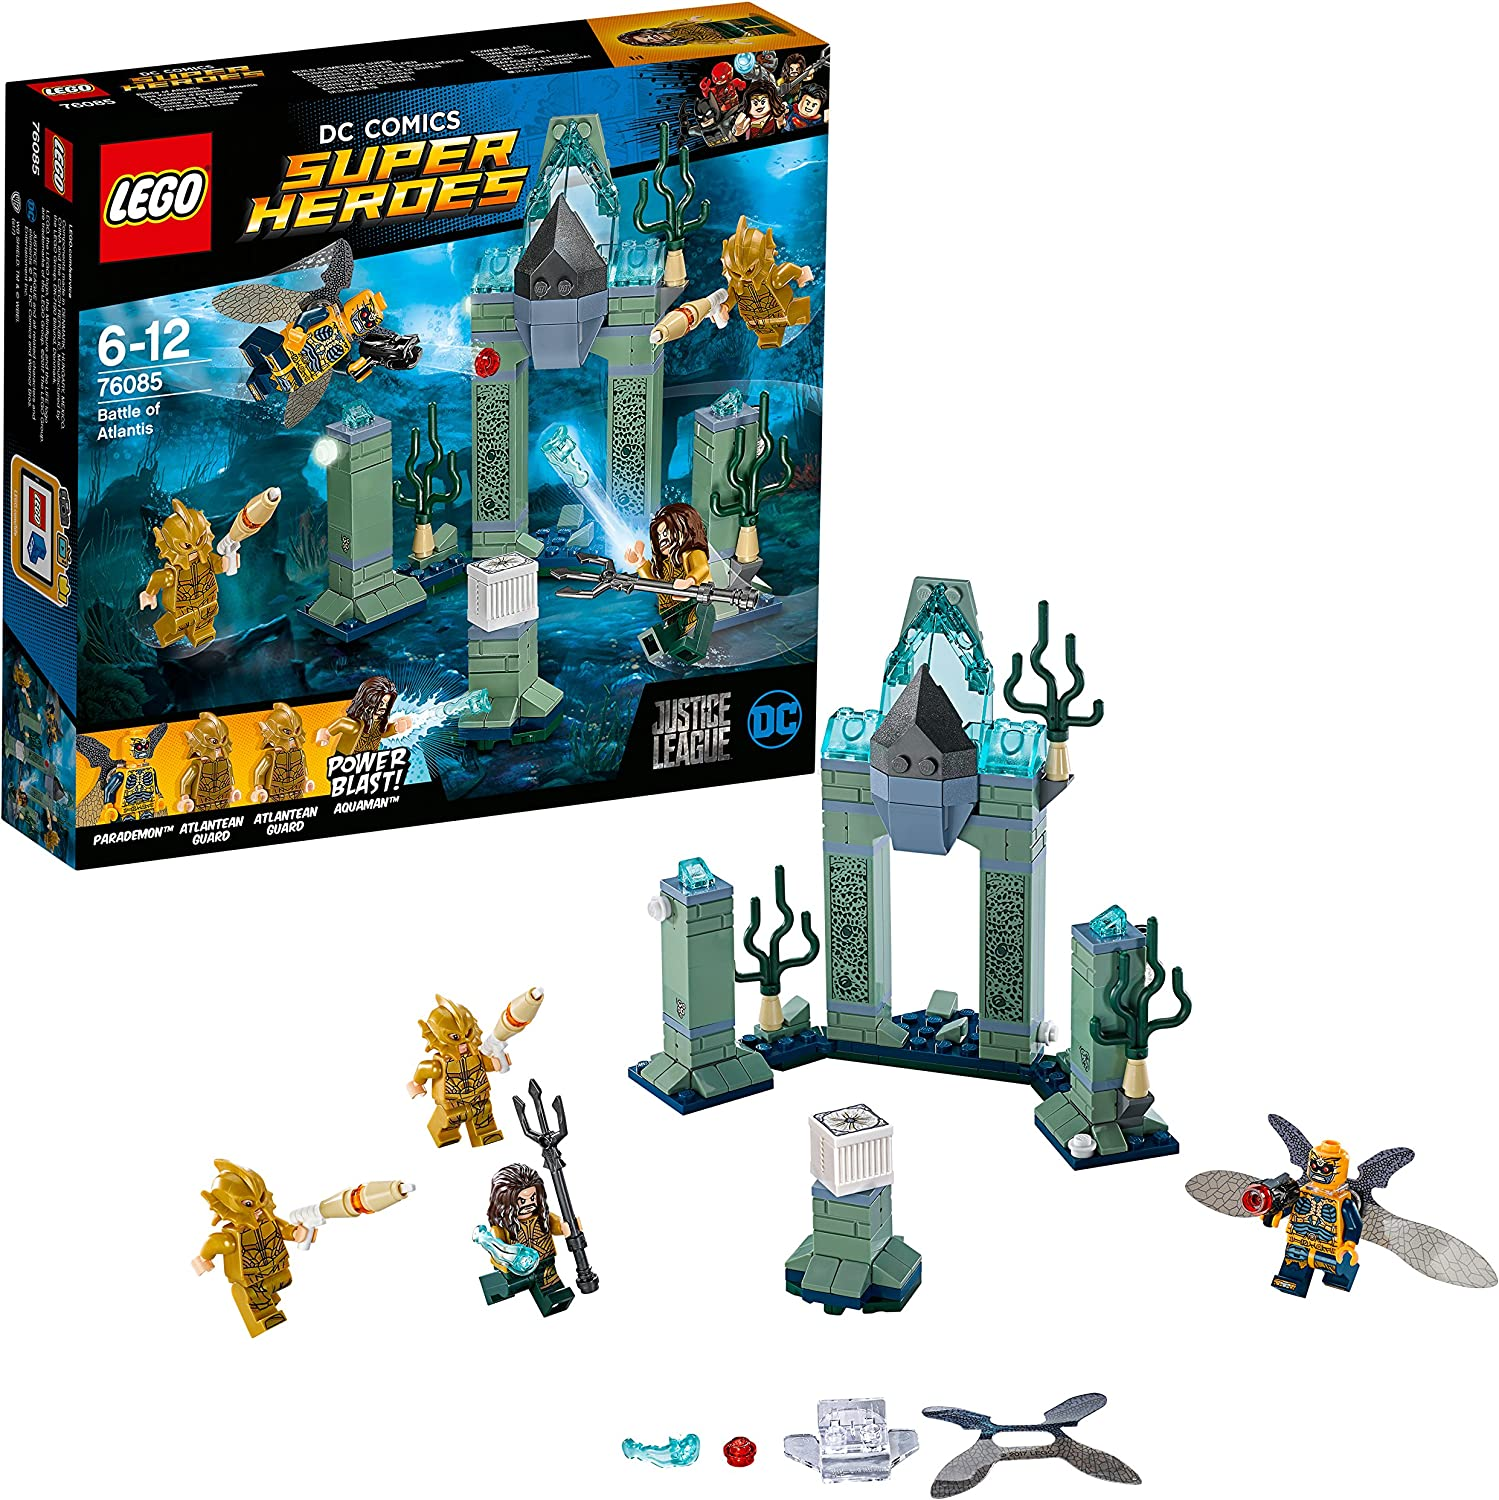 LEGO Super Heroes ATLANTEAN GUARD Minifigure from 76085